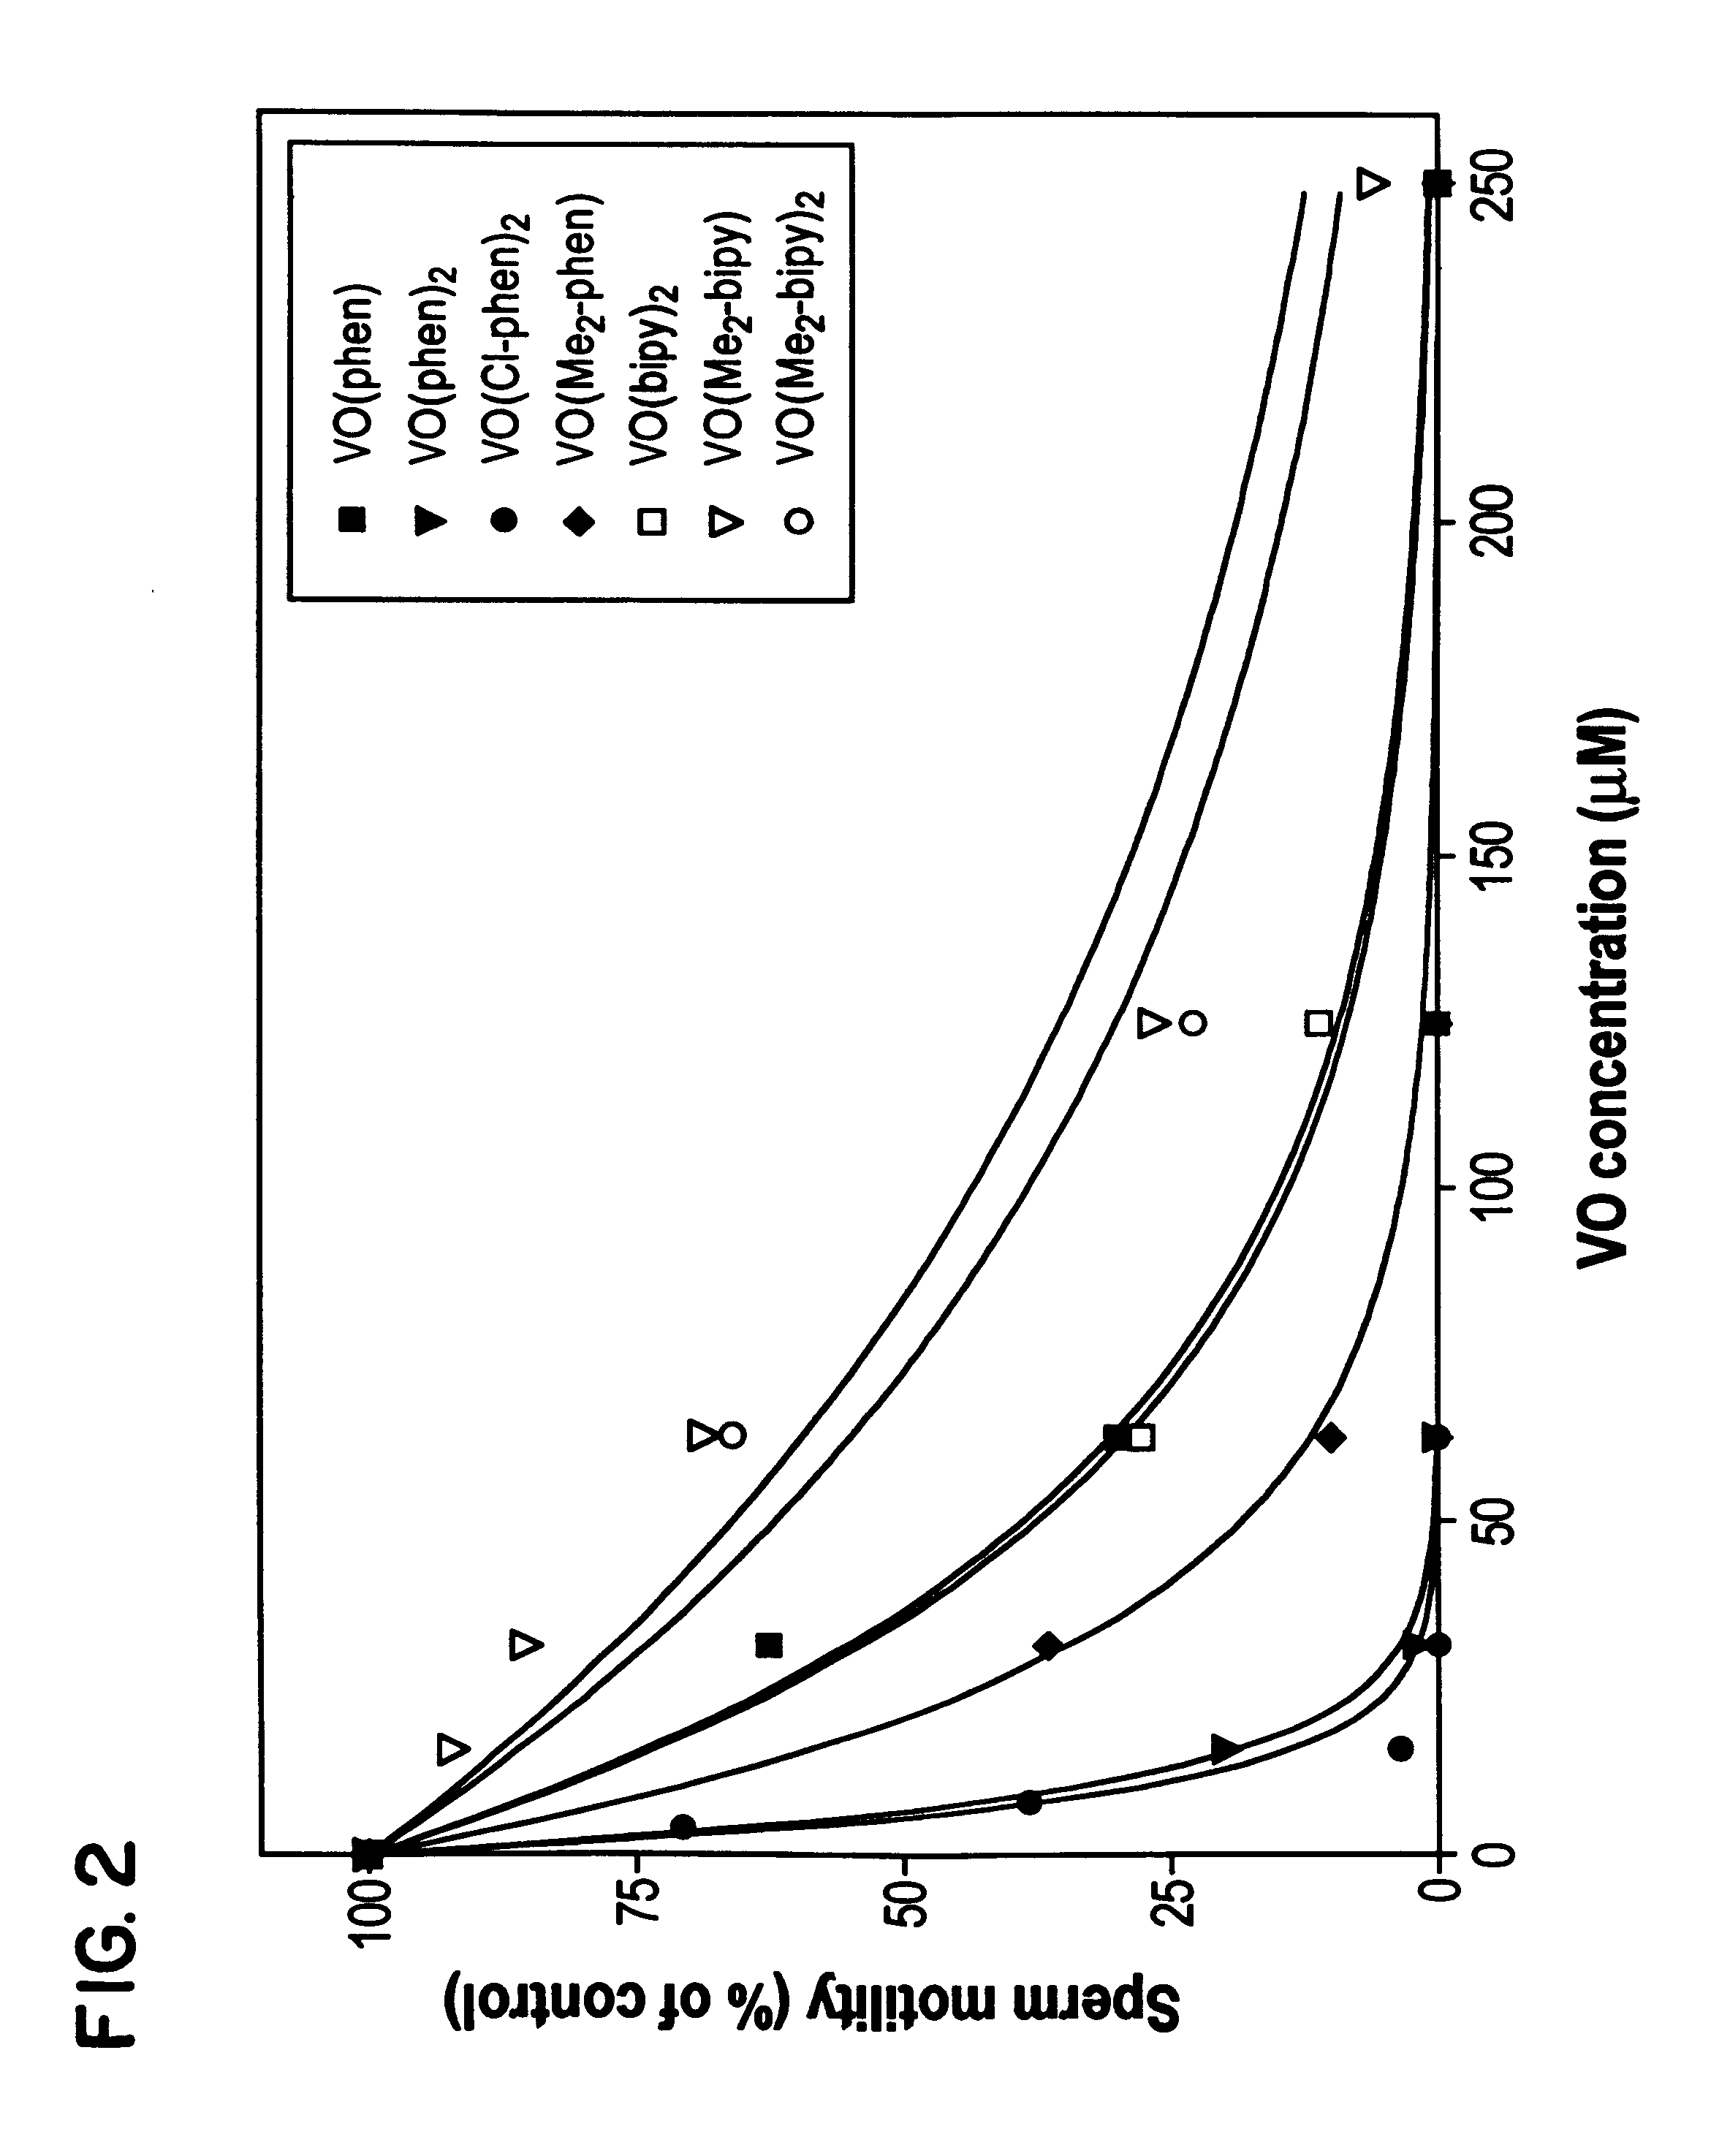 sperm motility inhibiting activity of a Semen analysis - check the sperm count, motility and morphology this is a very simple and important test and should be done early in the evaluation process sometimes the test should be done 2, or even 3 times to get an accurate reflection of the numbers and their variation over time.